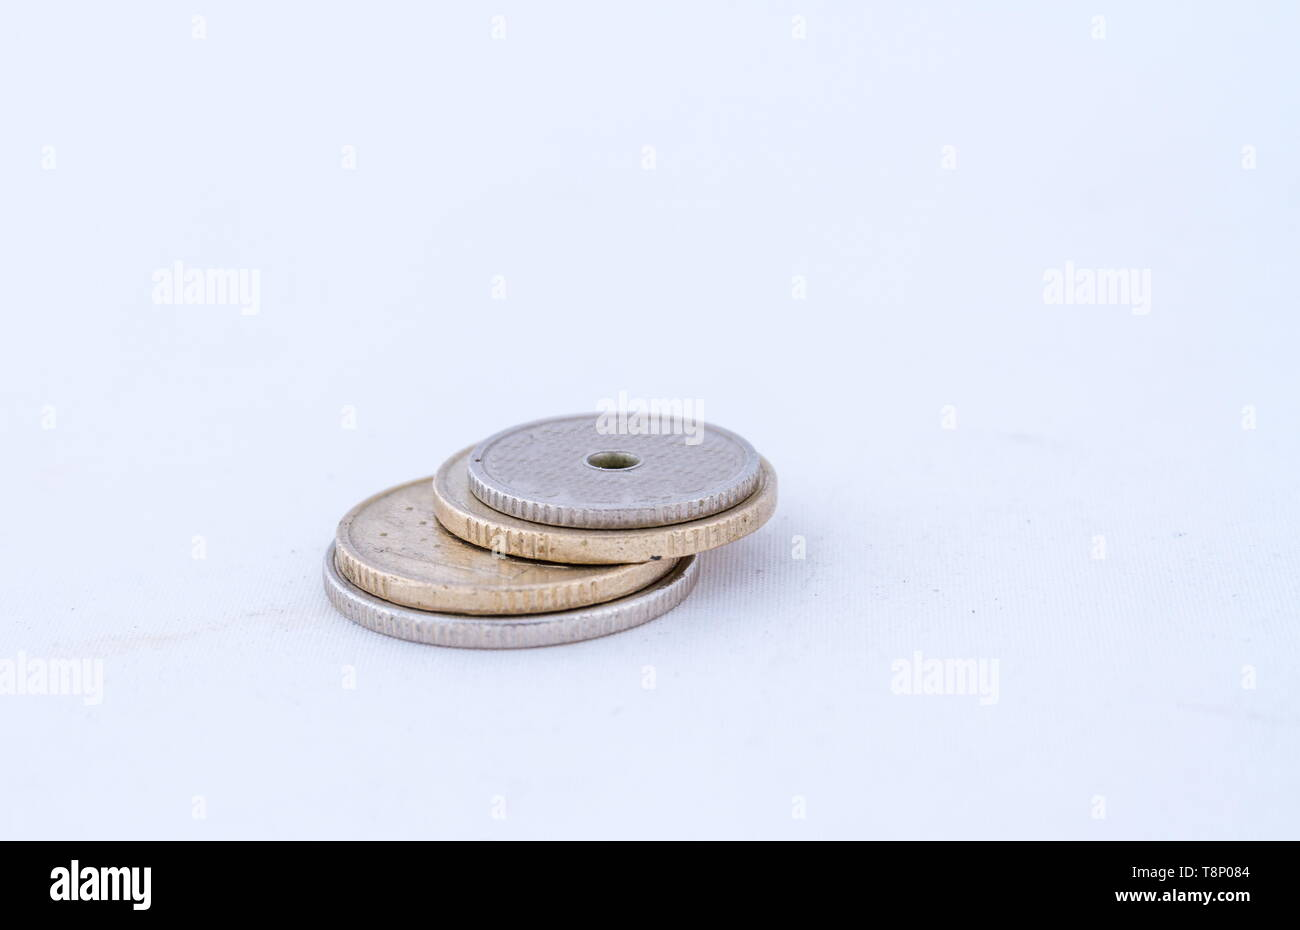 A small stack of coins isolated on a white background image with copy space in landscape format - Stock Image